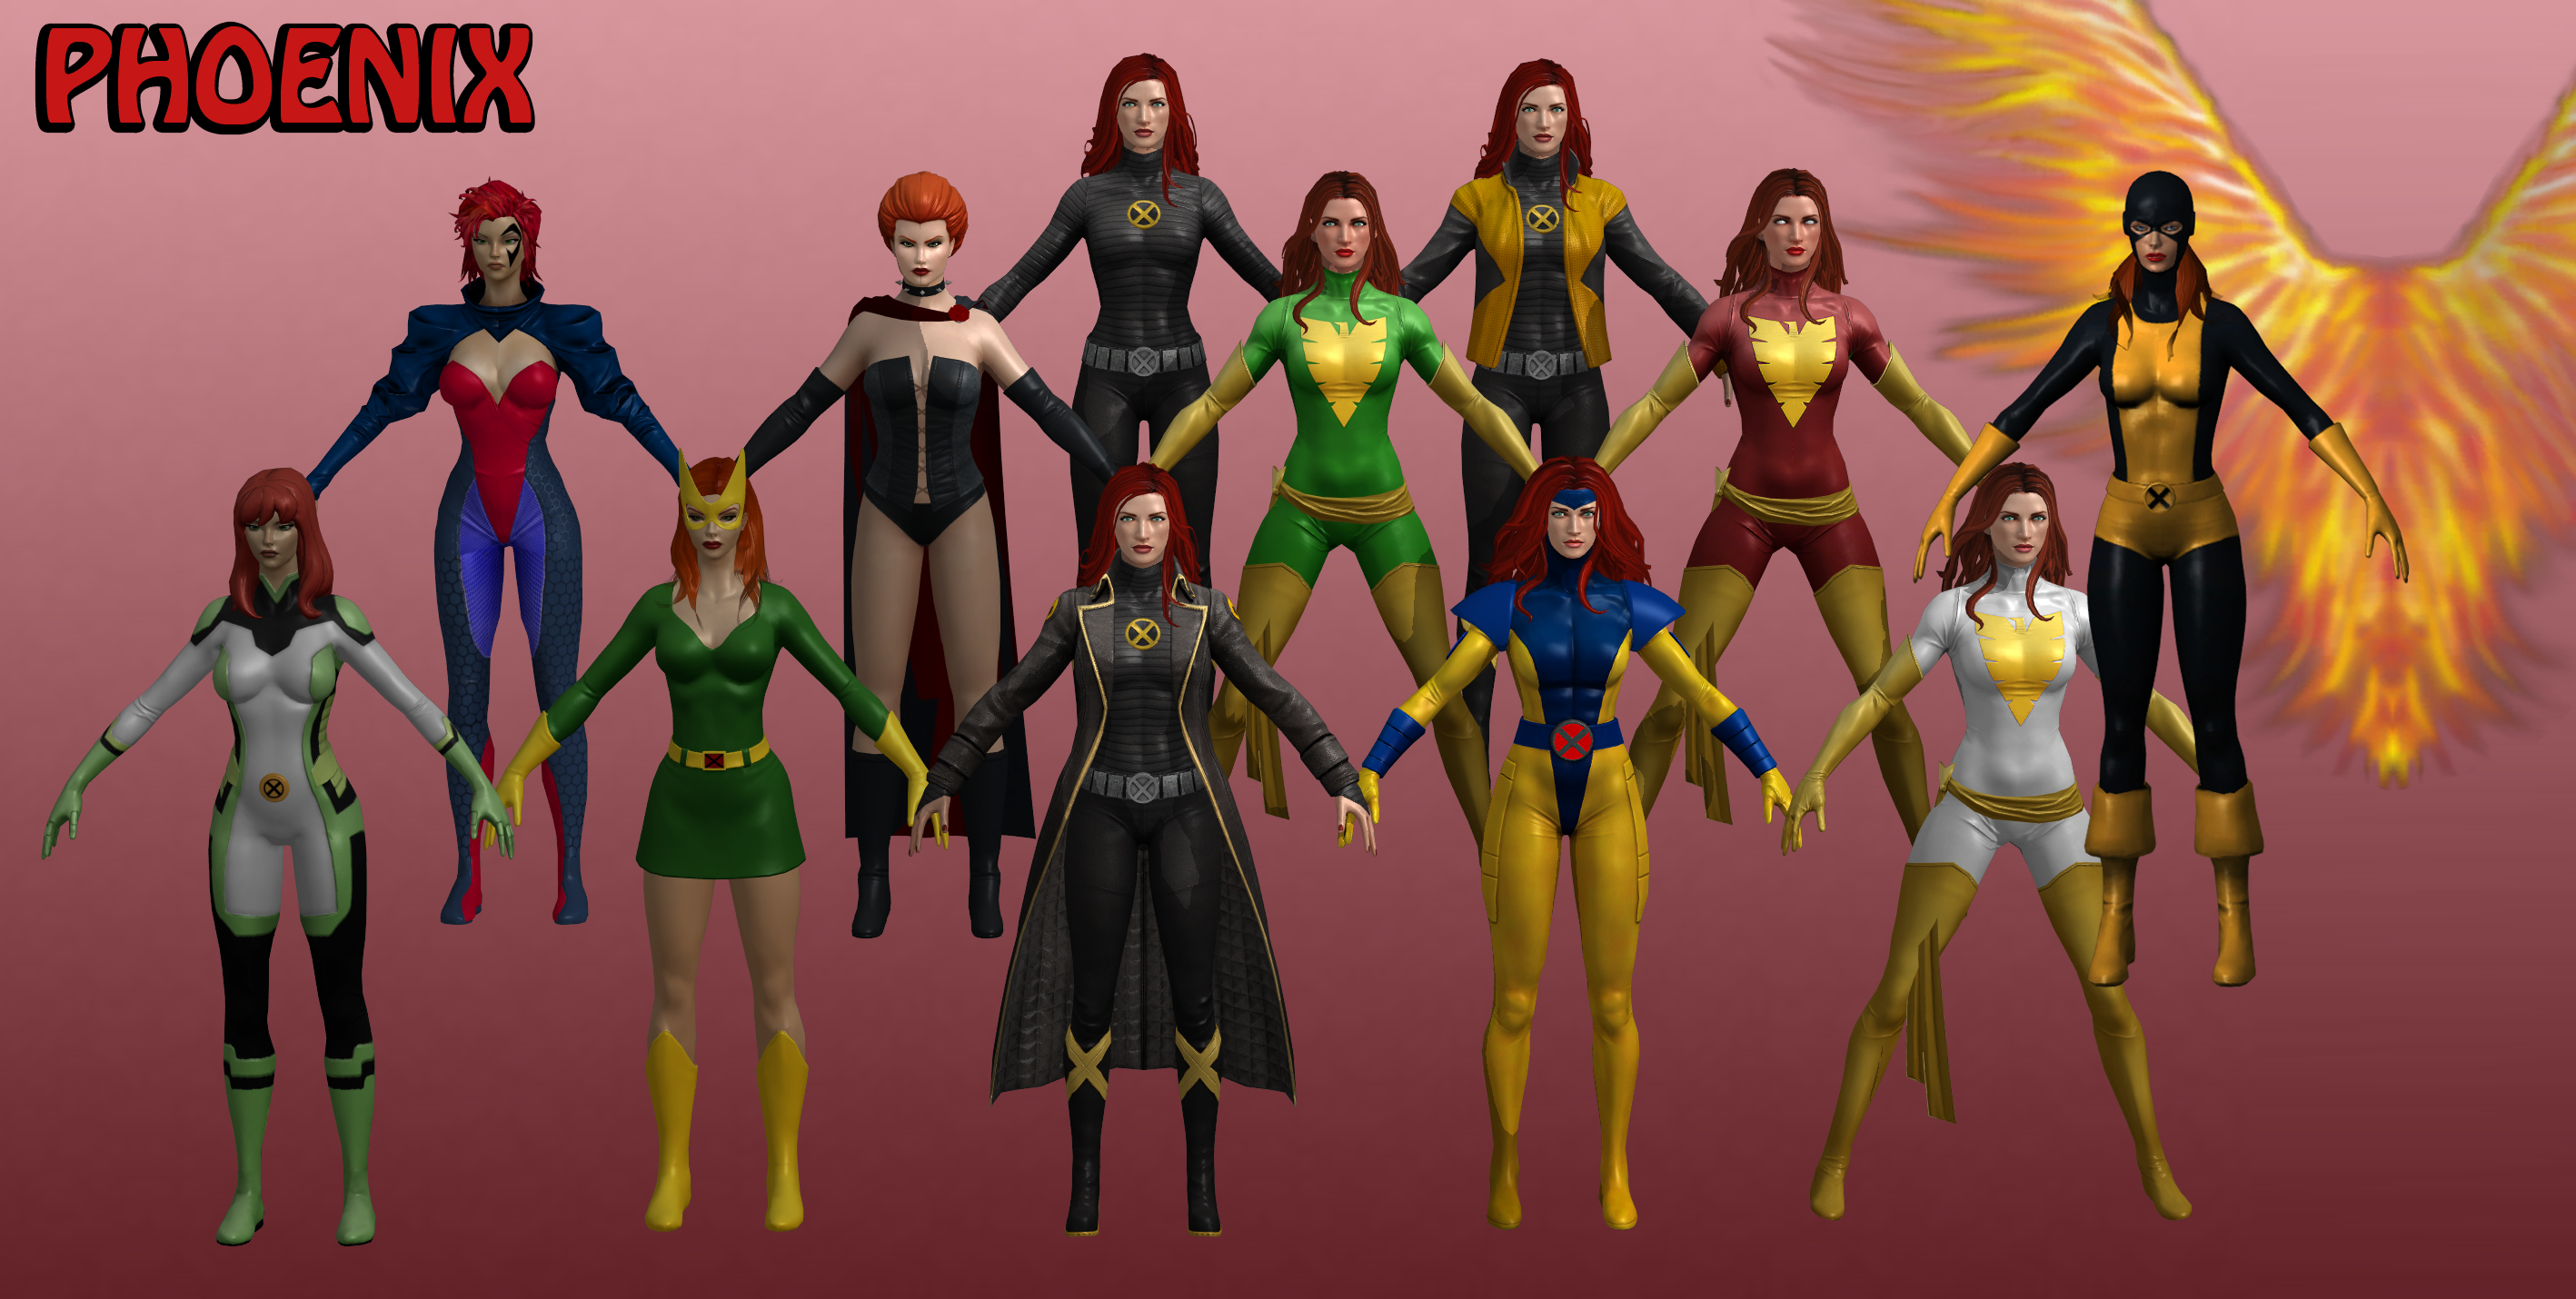 Phoenix Marvel Heroes XNALara by Xelandis on DeviantArt